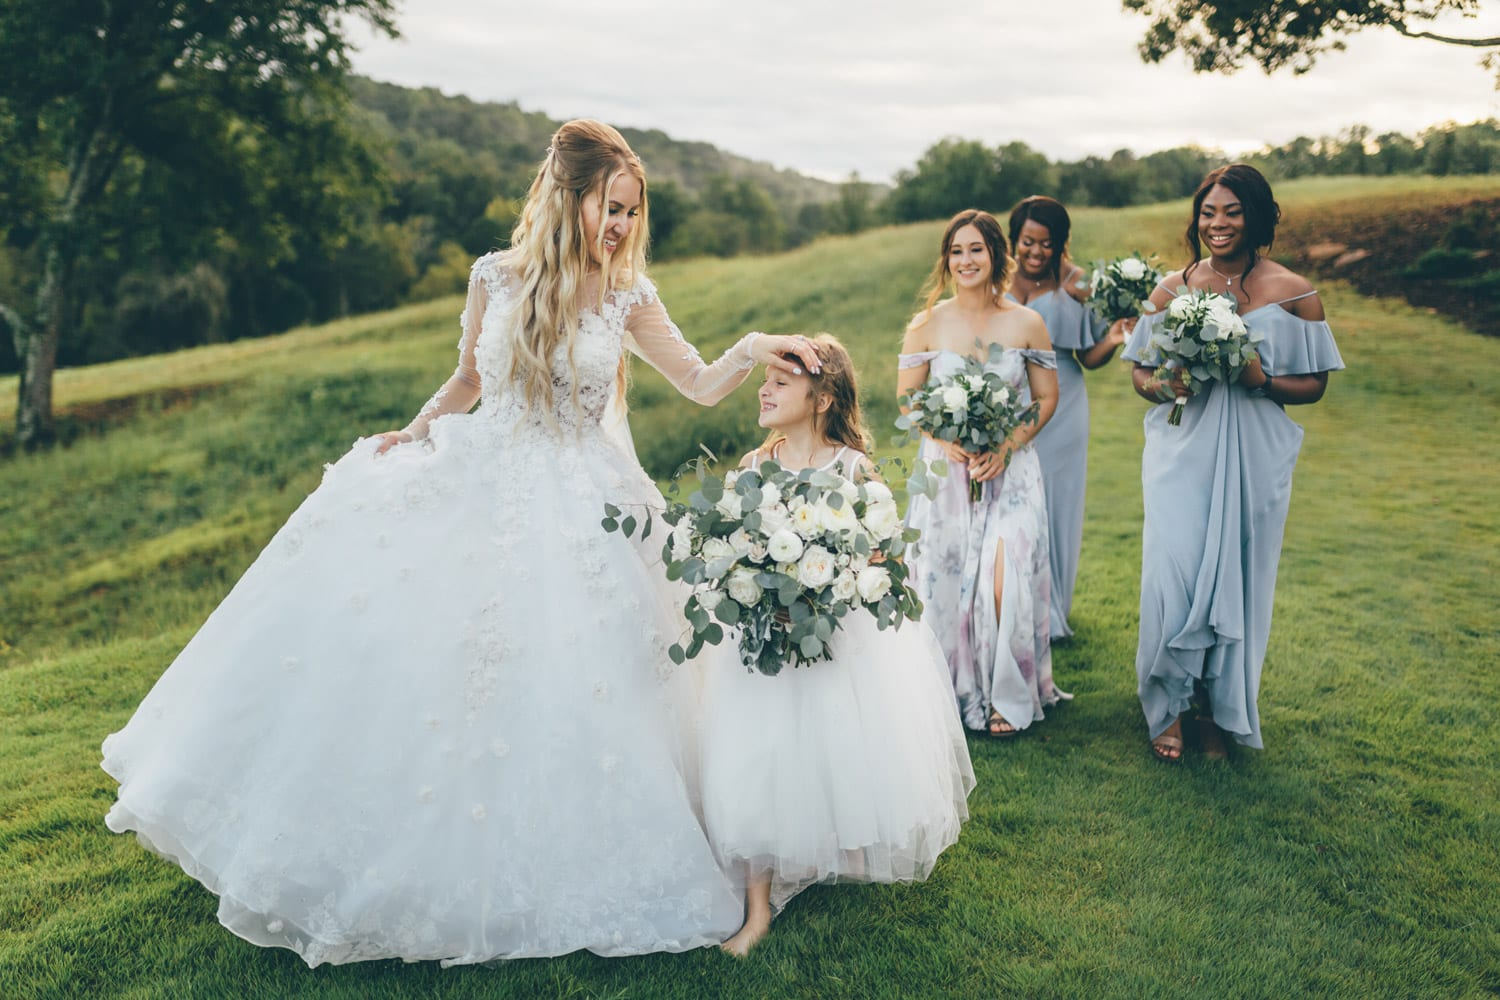 Bride walks outside with bridesmaids and flower girl